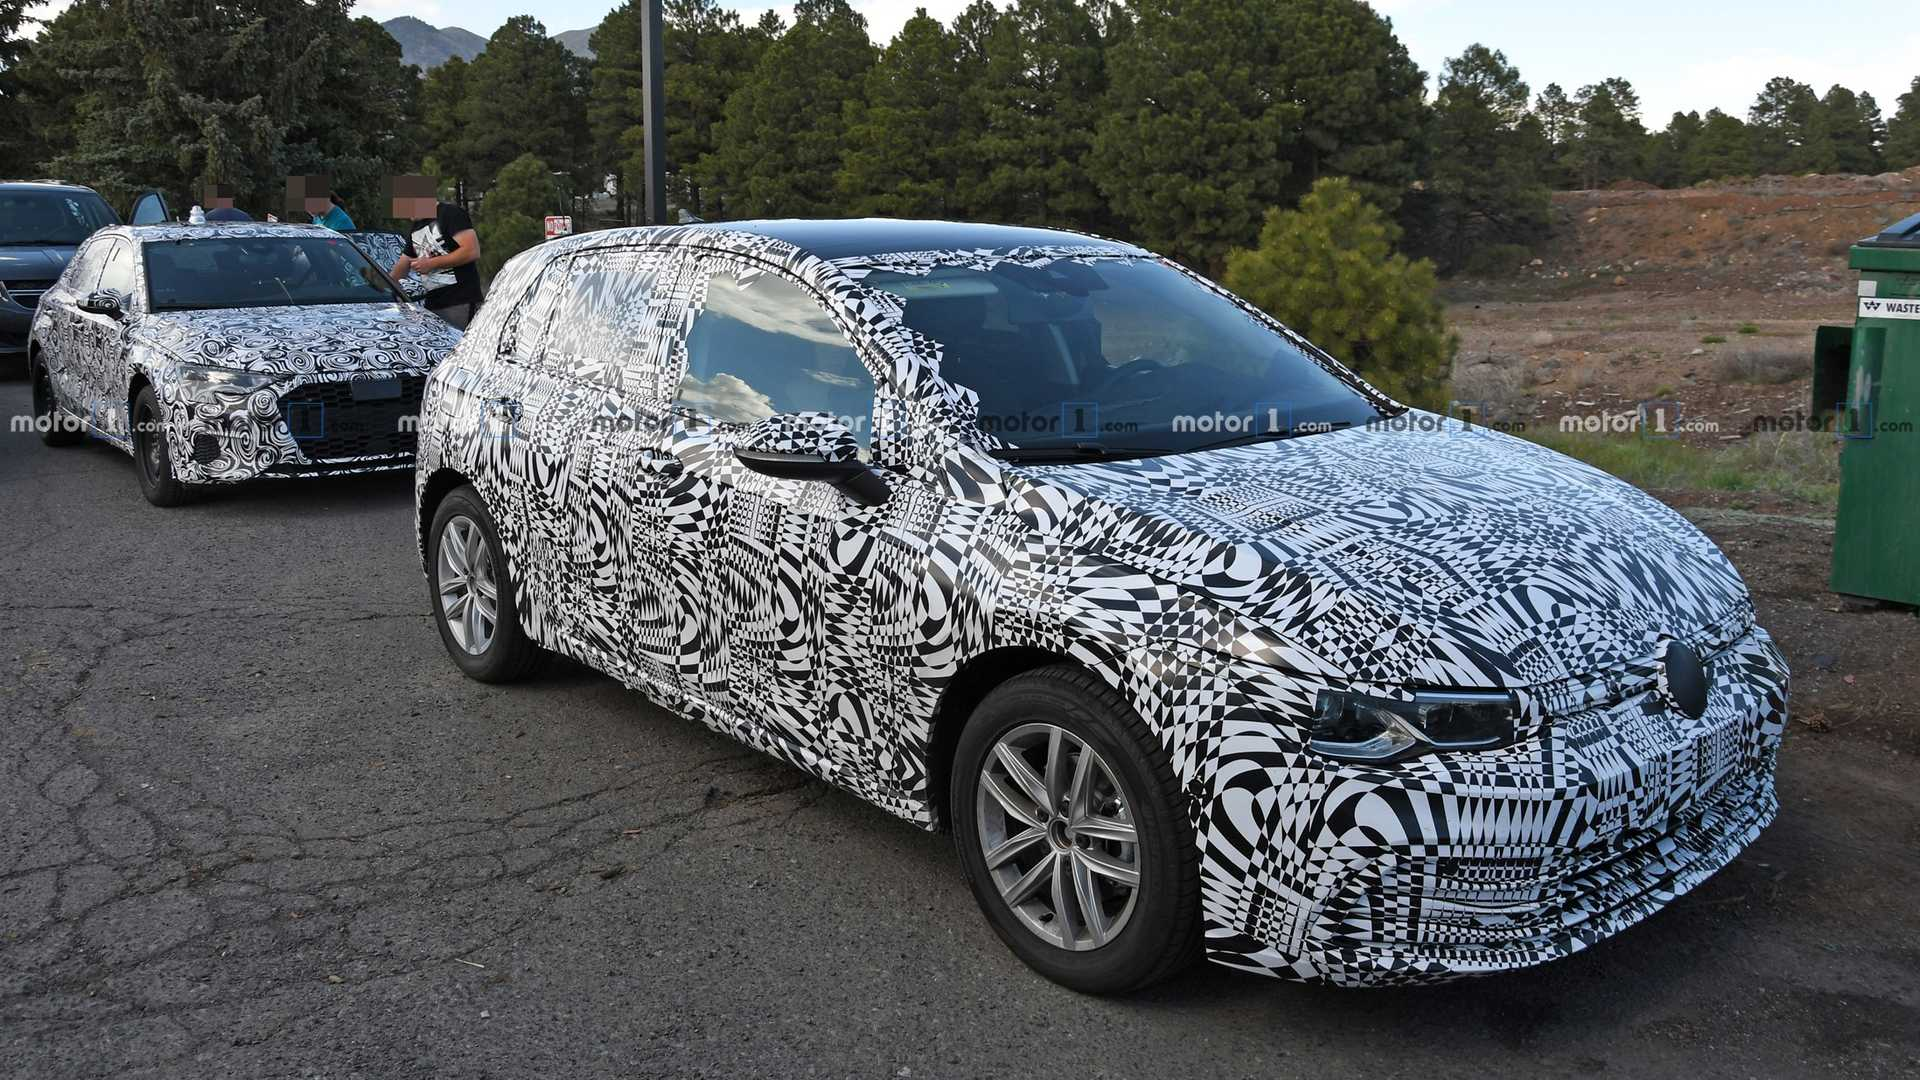 2020 Vw Golf Interior Spied For The First Time